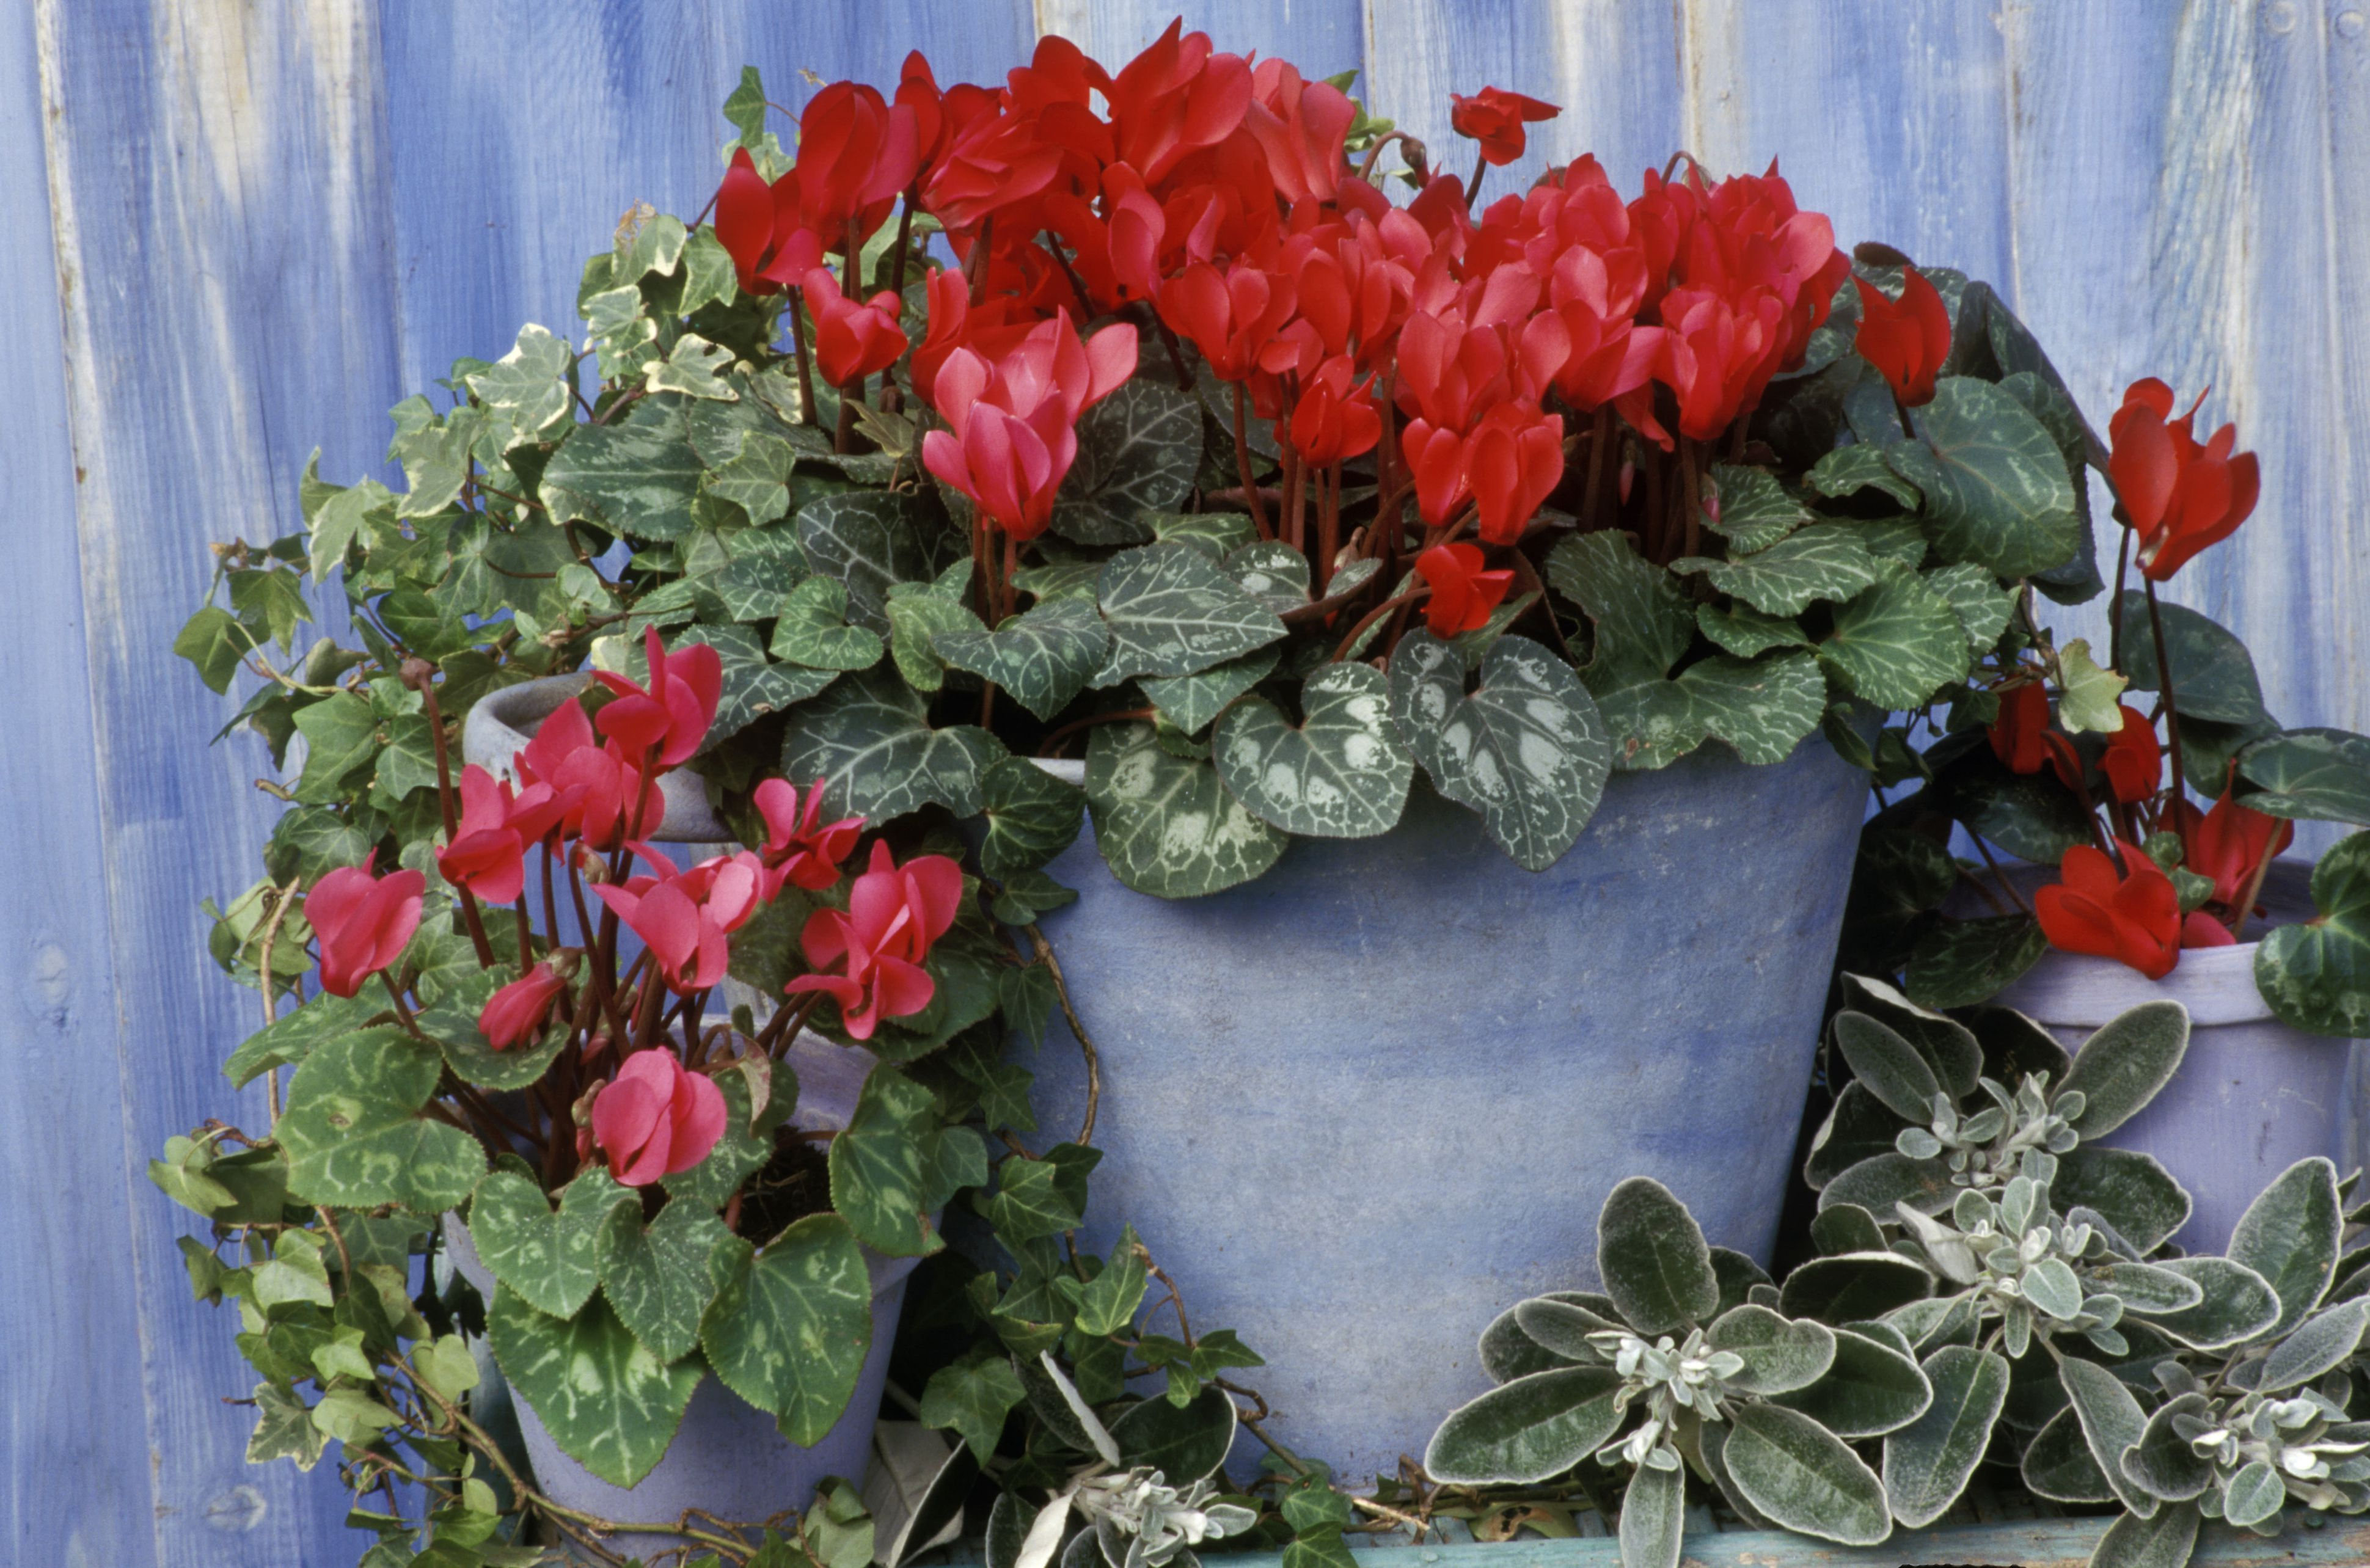 How to Grow and Care for Cyclamen Plants House Plant With Pink Flowers on house with trees and flowers, house plant with fragrant white flowers, popular house plants with flowers, house plant identification, house plant pink splash, perennial daisy plant with purple flowers, house plants that flower, invasive plant with tall orange flowers, growing wax flowers, house plant with waxy flowers, common house flowers, patience yellow flowers, house plant with lily, house plants for dark areas, house plant with color, house plant with small white flowers, house plant with vines, edible plants with flowers, house plant purple heart, bromeliad plant flowers,